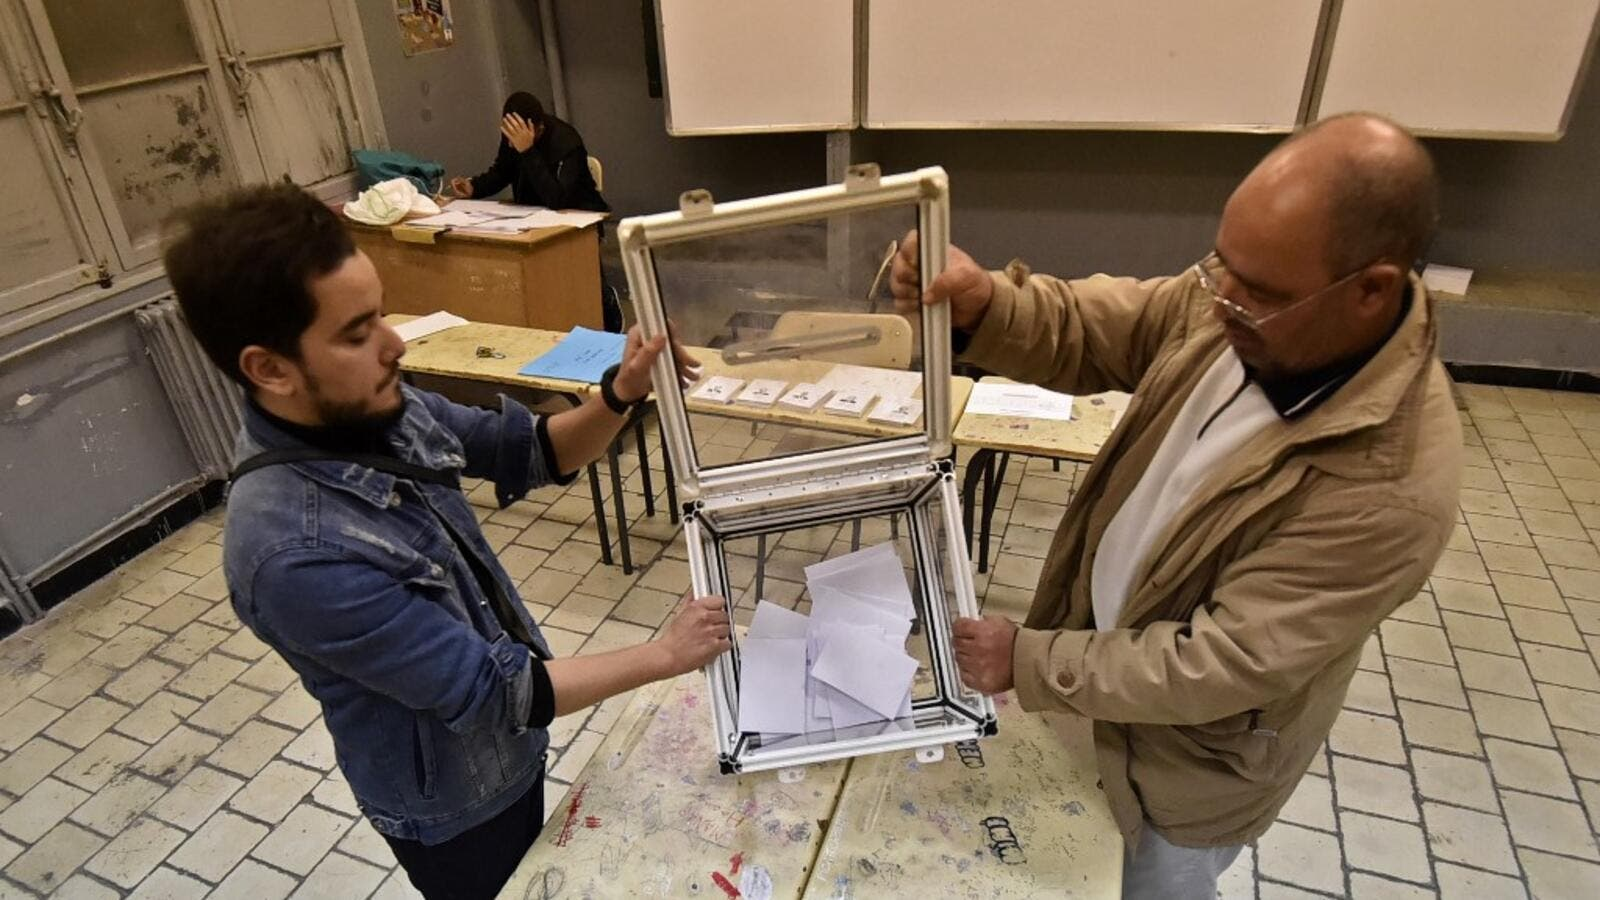 Election officials count ballot papers of the presidential election in the capital Algiers on December 12, 2019. Algeria held a tense presidential election meant to bring stability after a year of turmoil, but voting was marred as protesters stormed polling stations and staged mass rallies in the capital. RYAD KRAMDI / AFP